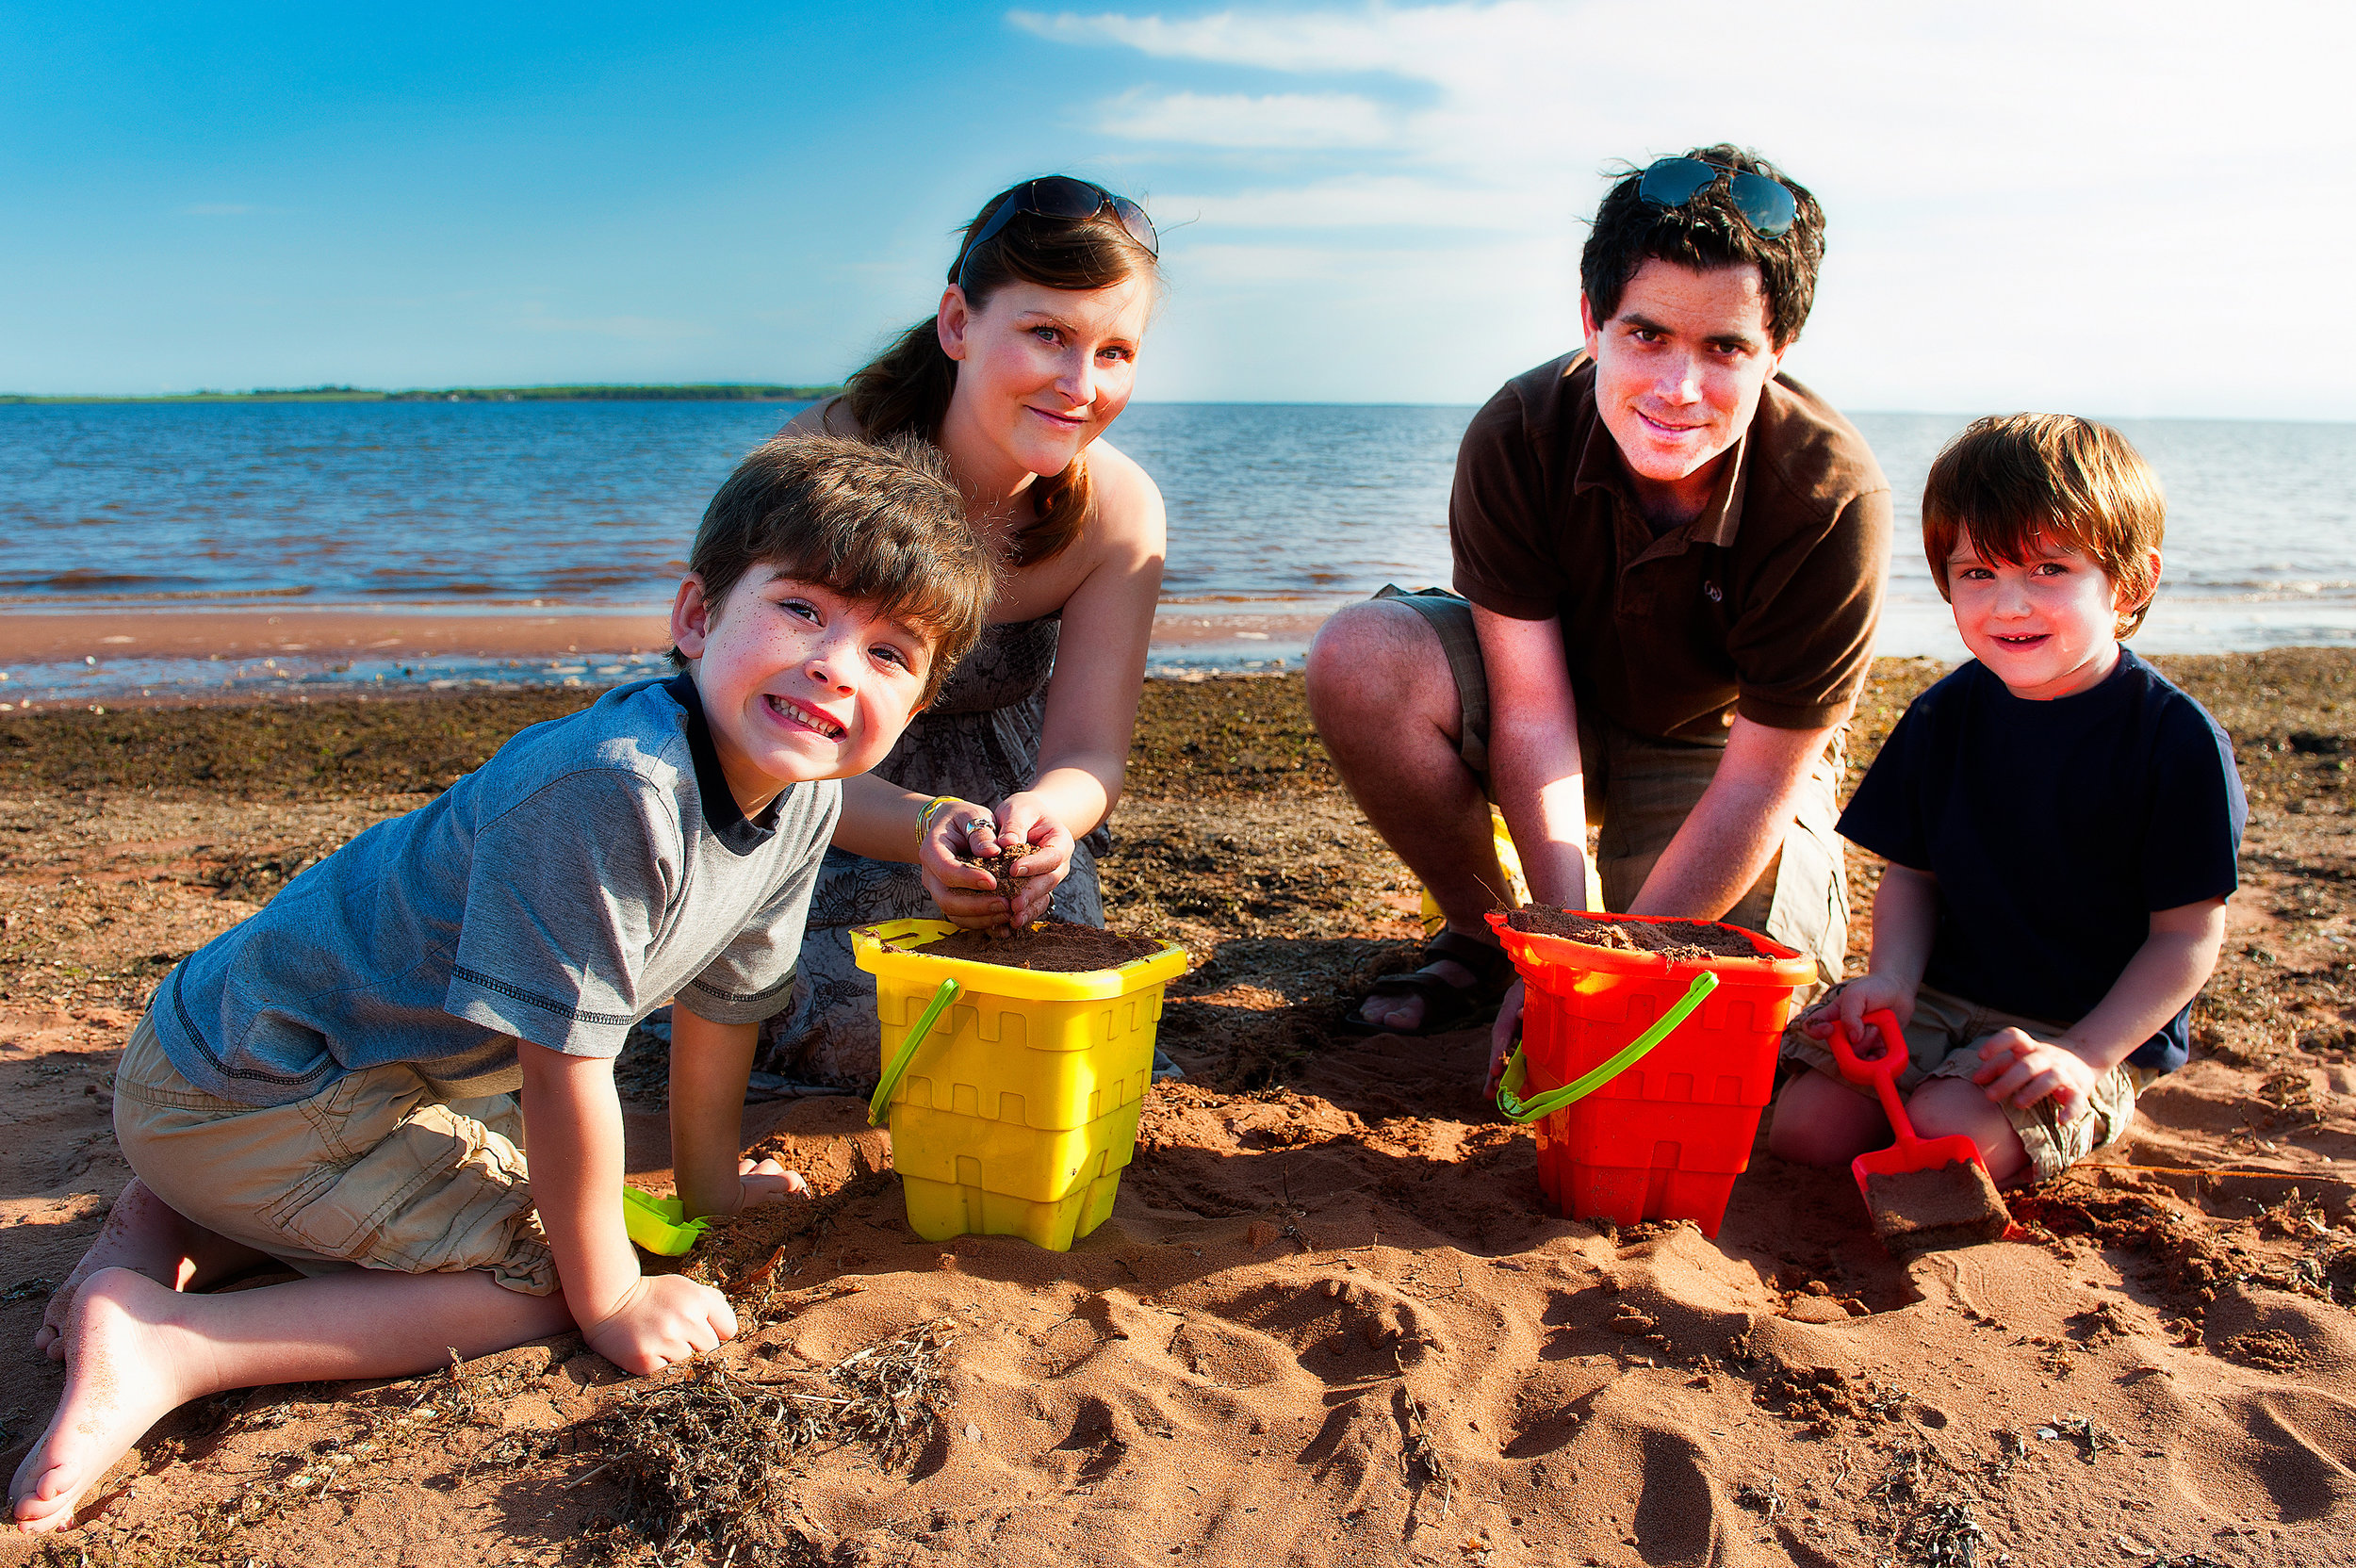 What is there to do with children in Summerside?